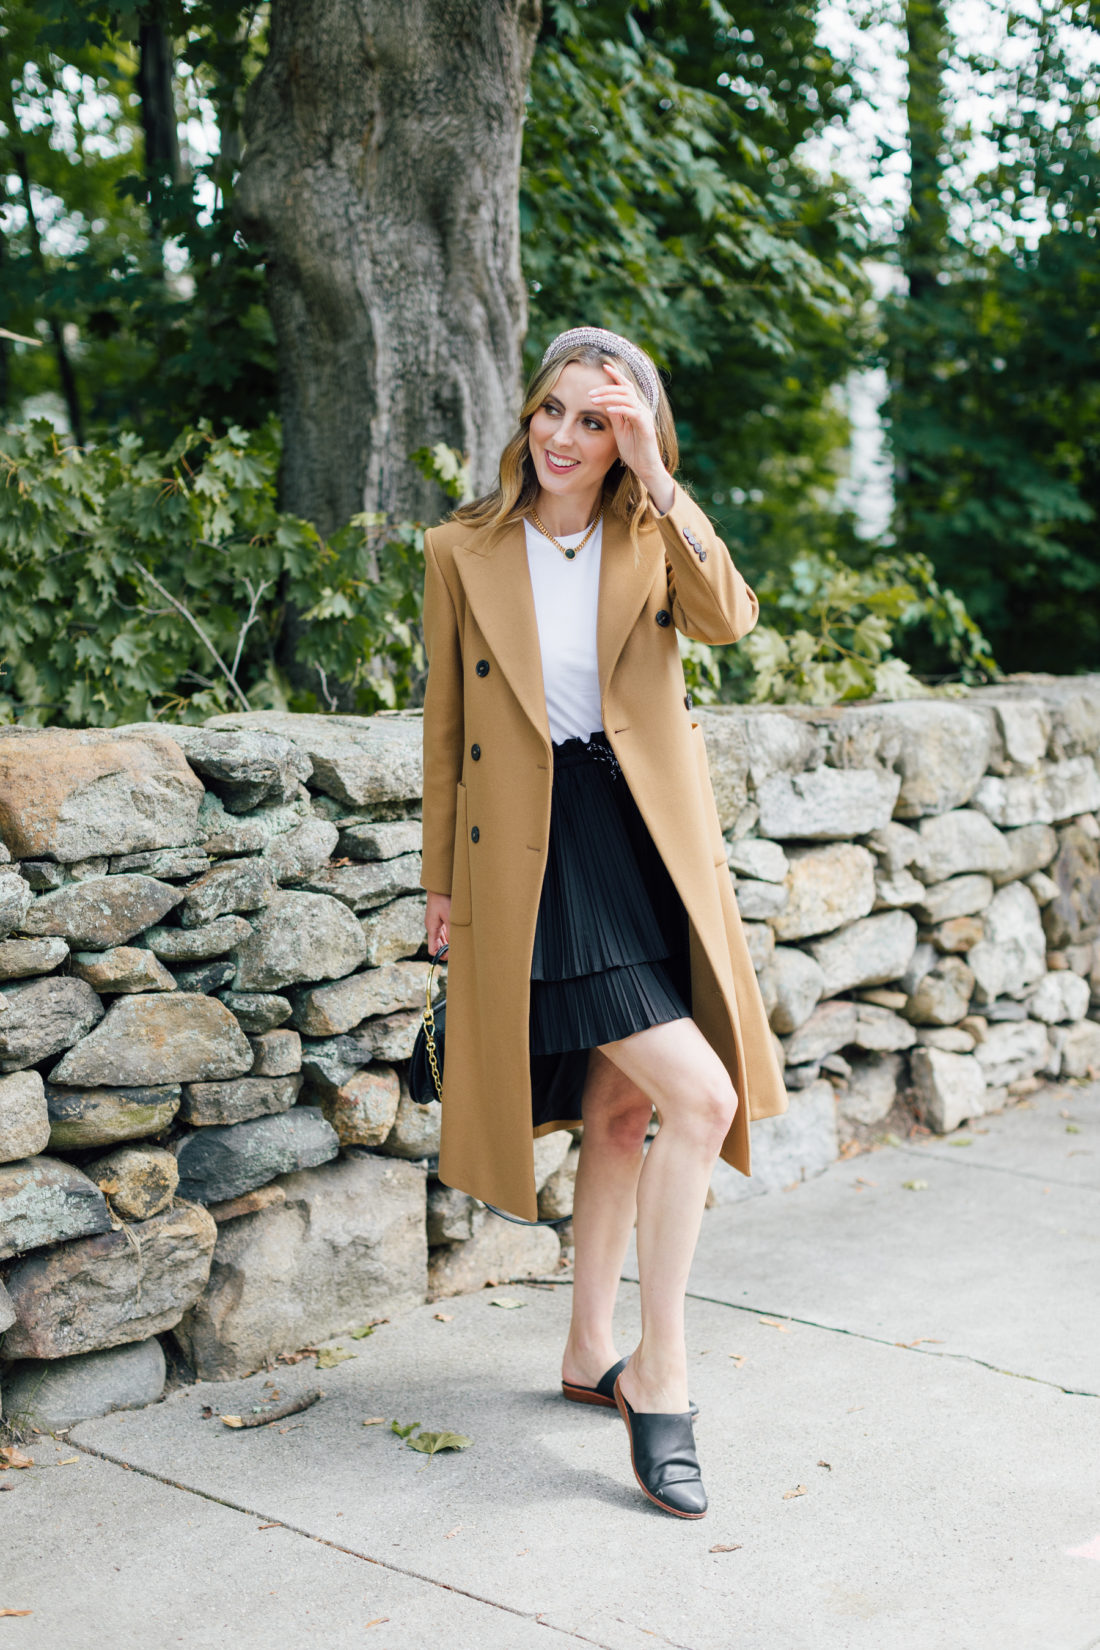 Eva Amurri Martino wears a camel coat, a black skirt and a white top as a neutral color palette